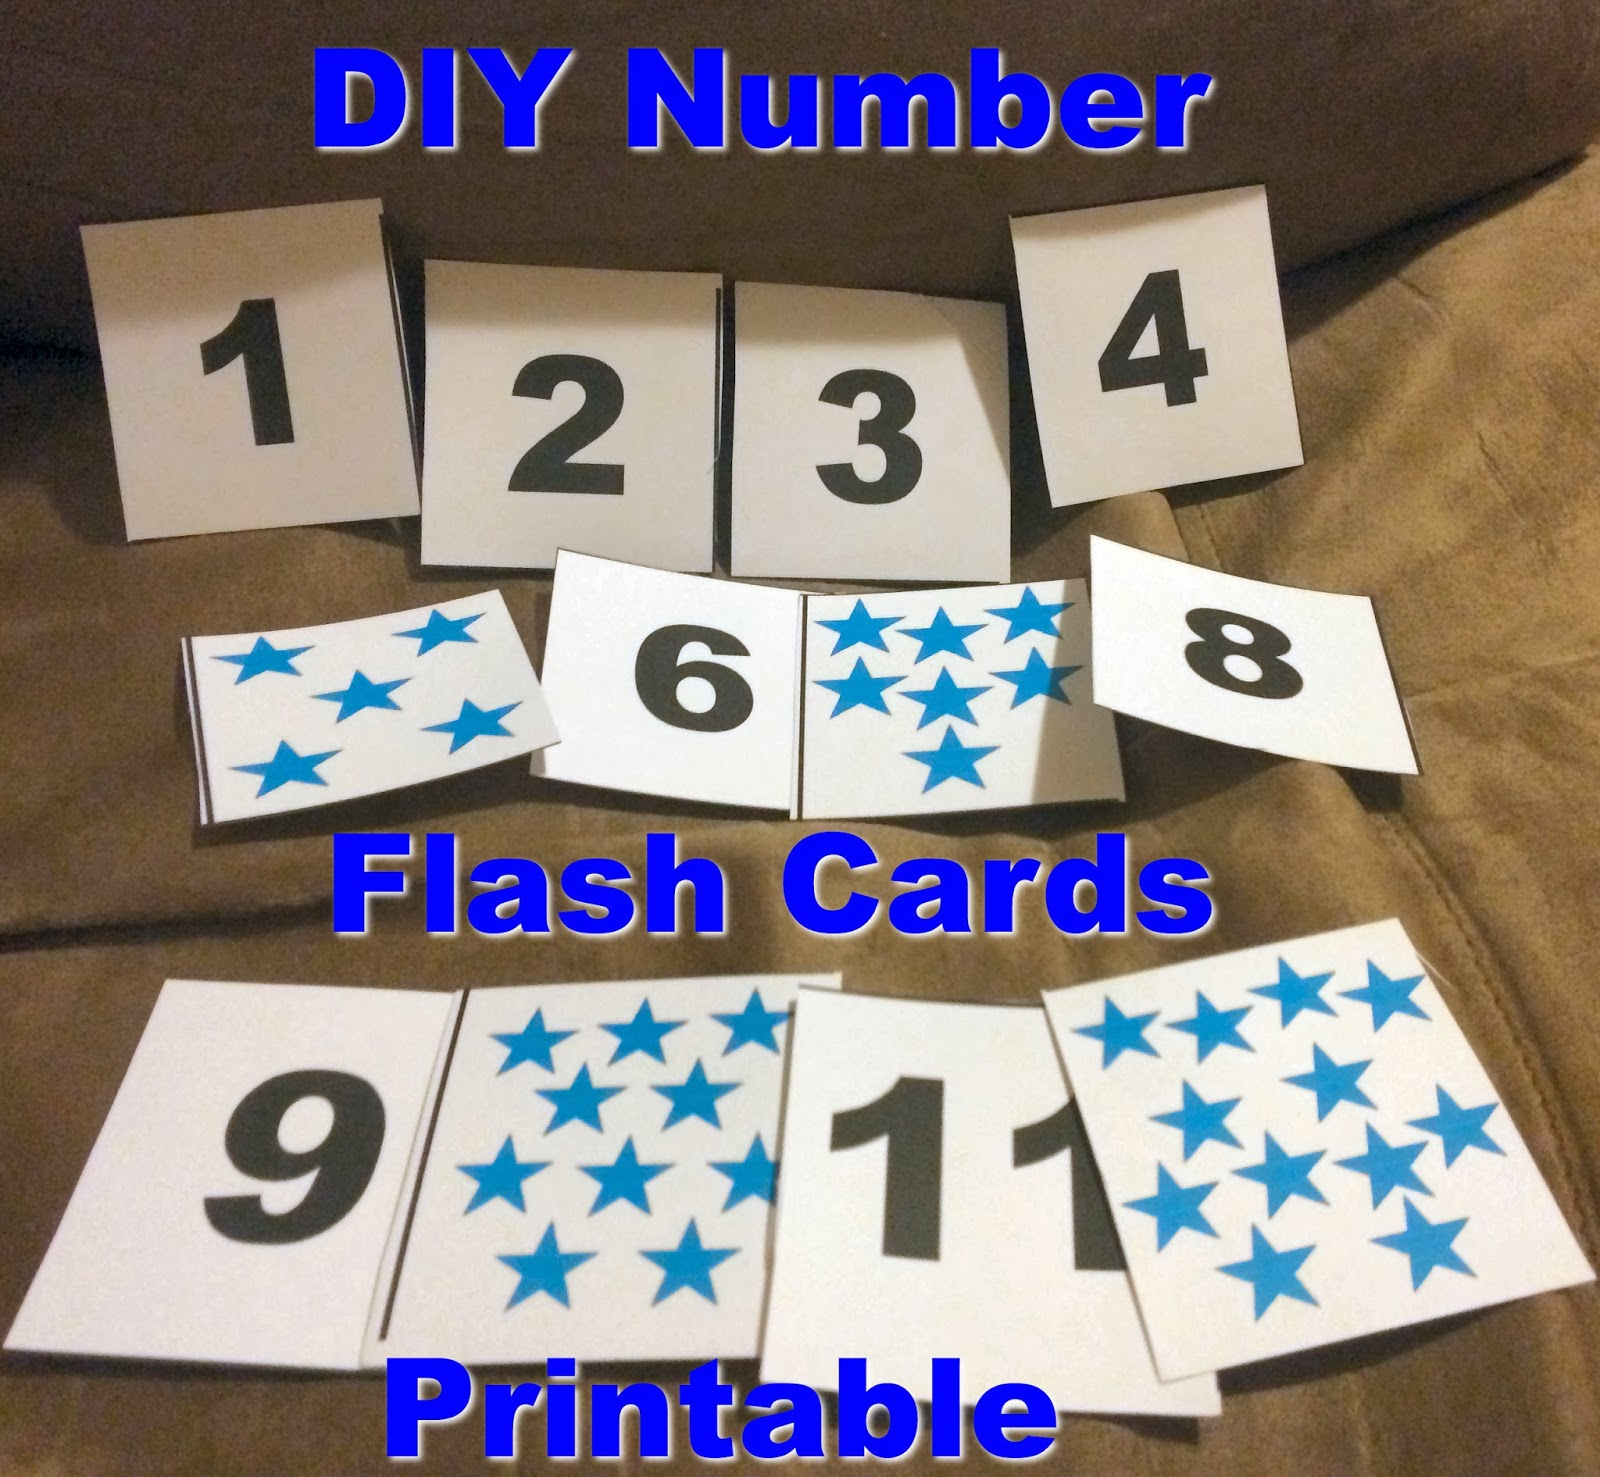 DIY Number Flash Cards for Toddlers and Printable - First ...